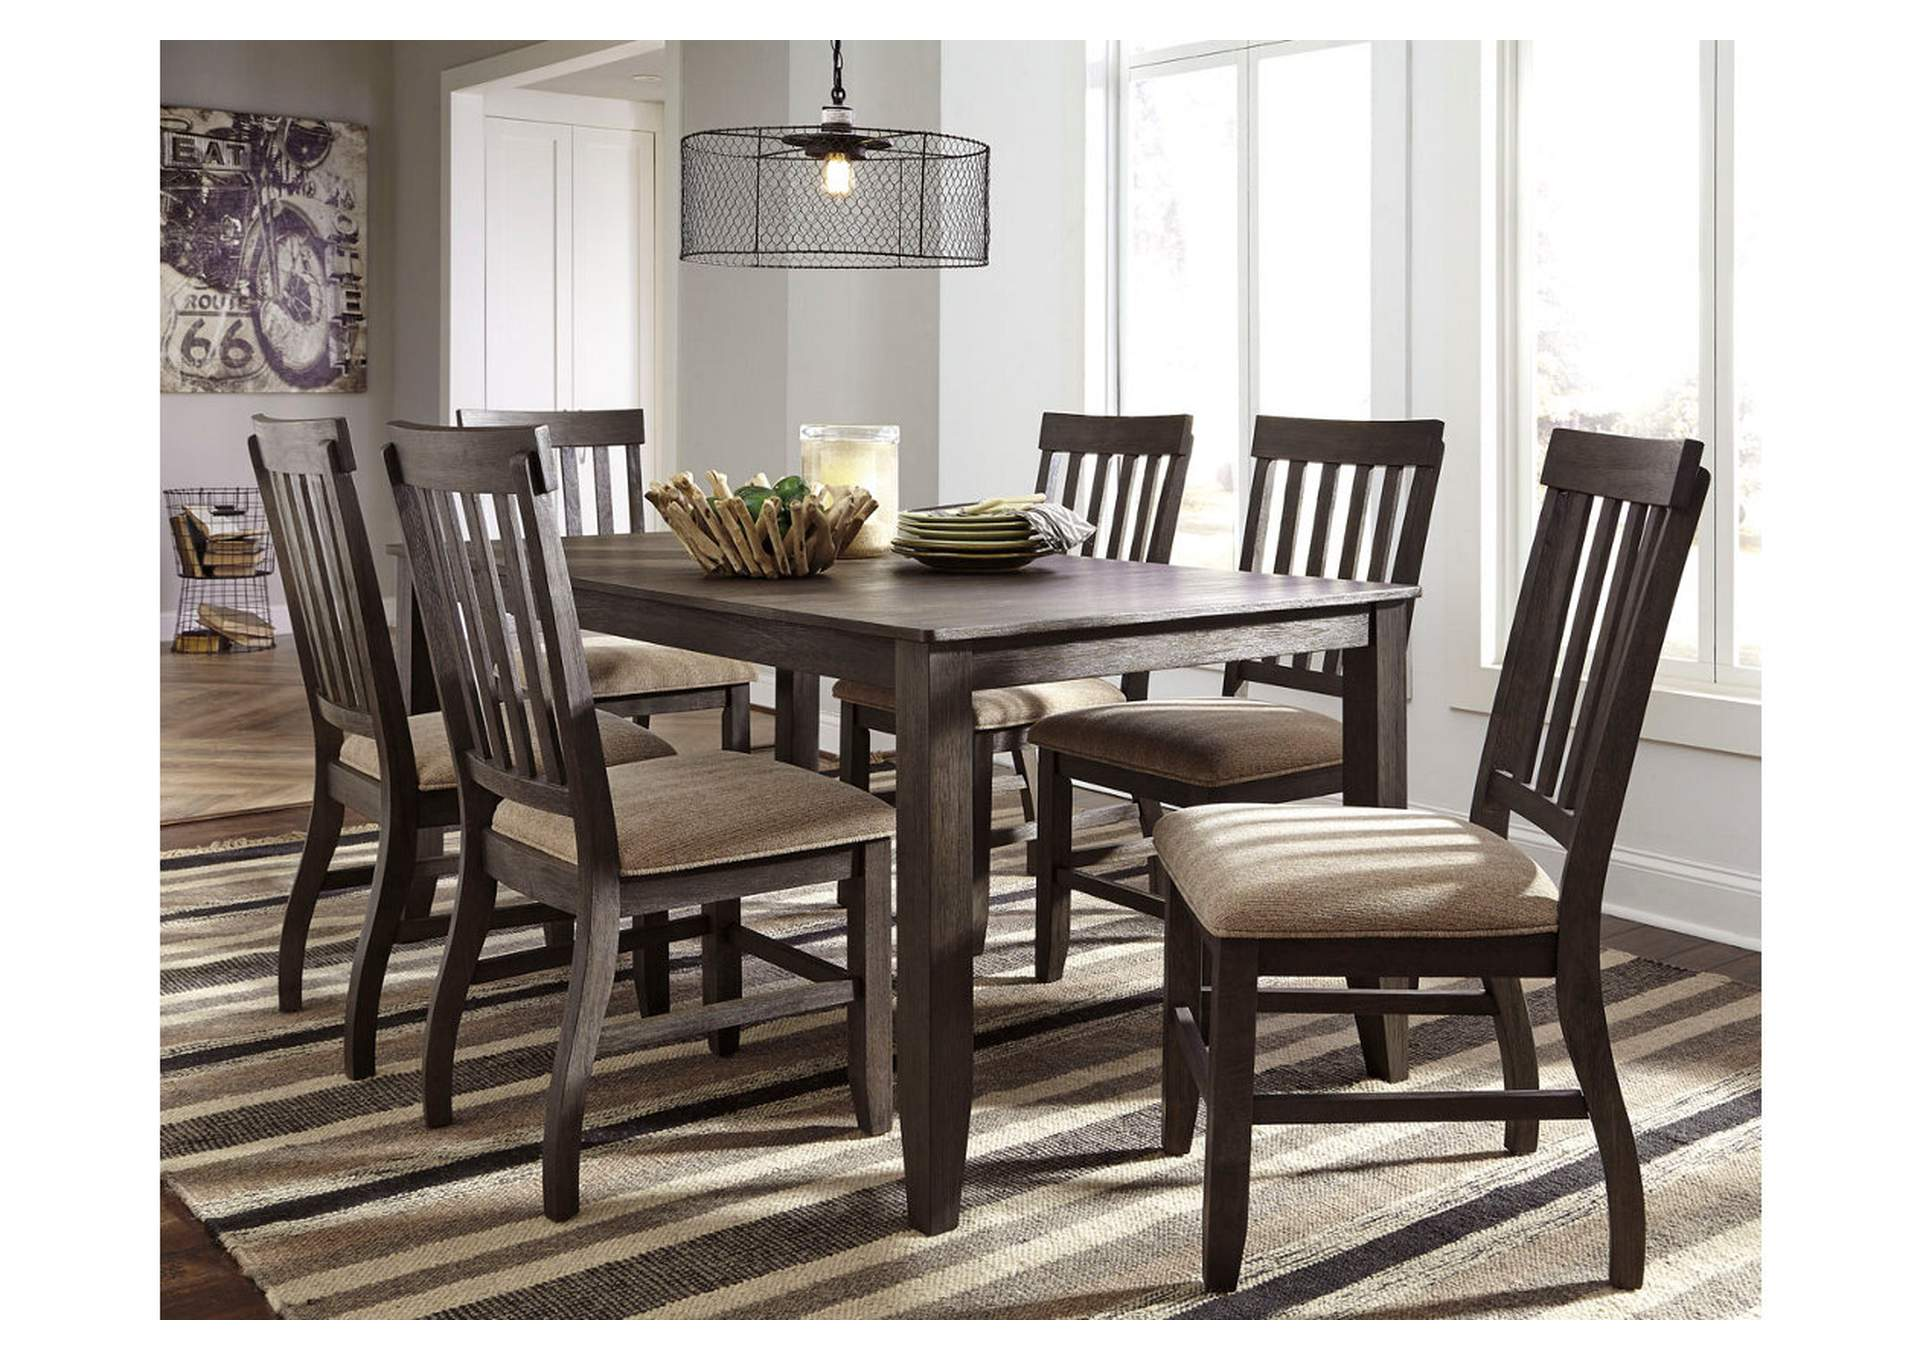 Dresbar Grayish Brown Rectangular Dining Room Table,Signature Design By Ashley